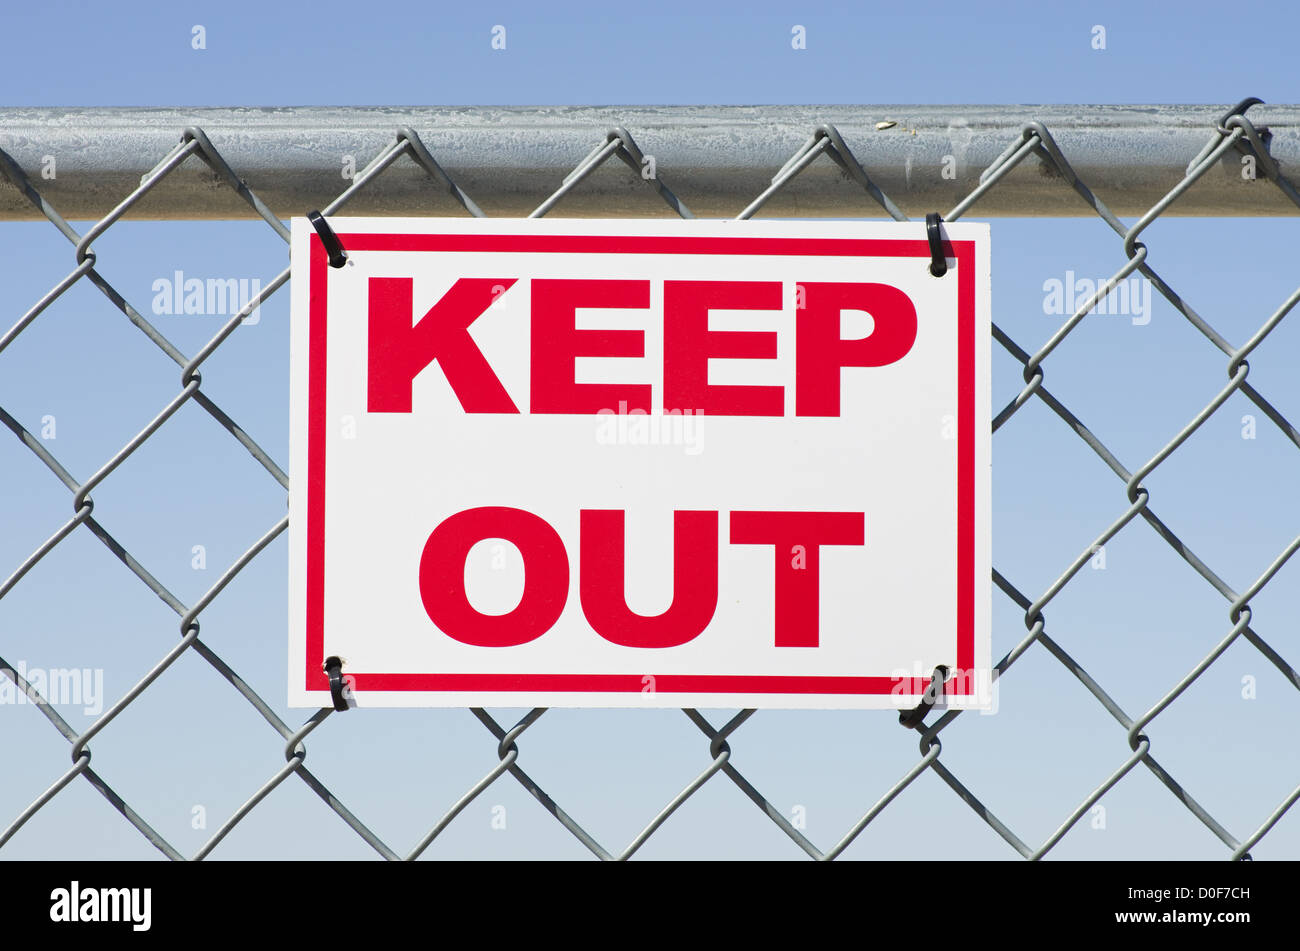 red and white keep out sign on a chain link fence - Stock Image